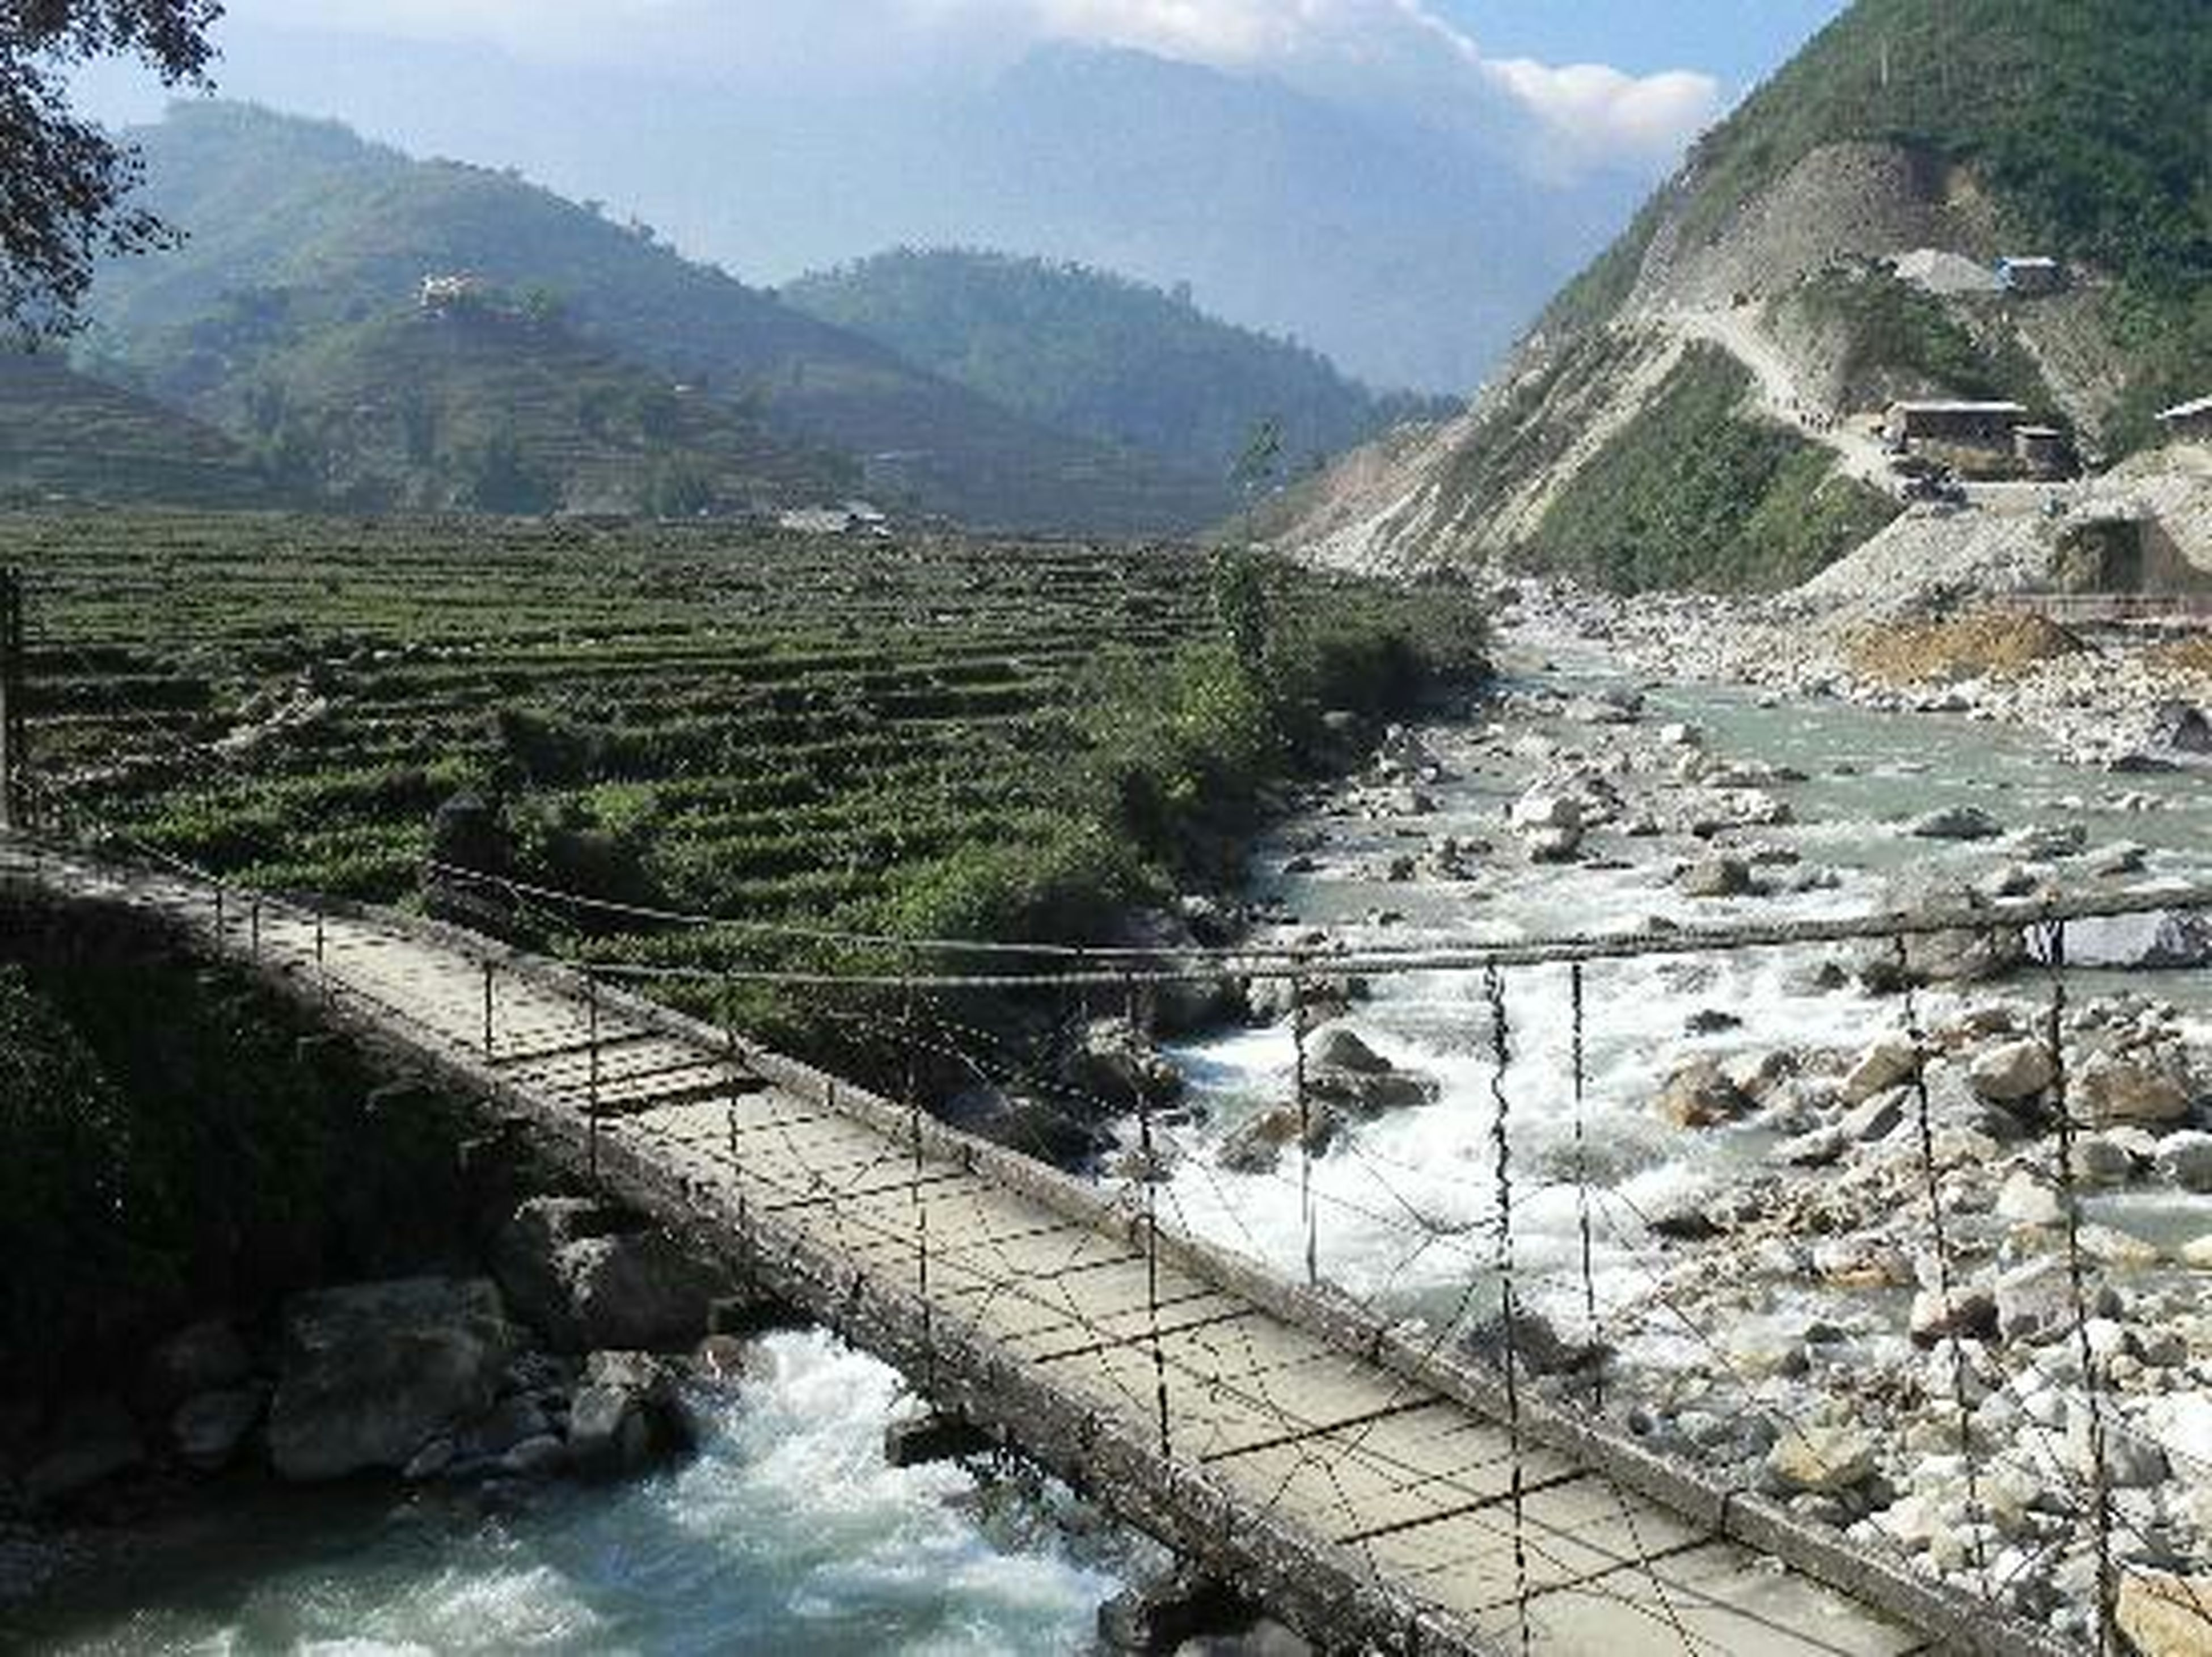 mountain, water, river, built structure, mountain range, scenics, tranquility, rock - object, high angle view, beauty in nature, tranquil scene, nature, architecture, sky, landscape, flowing water, railing, bridge - man made structure, connection, day